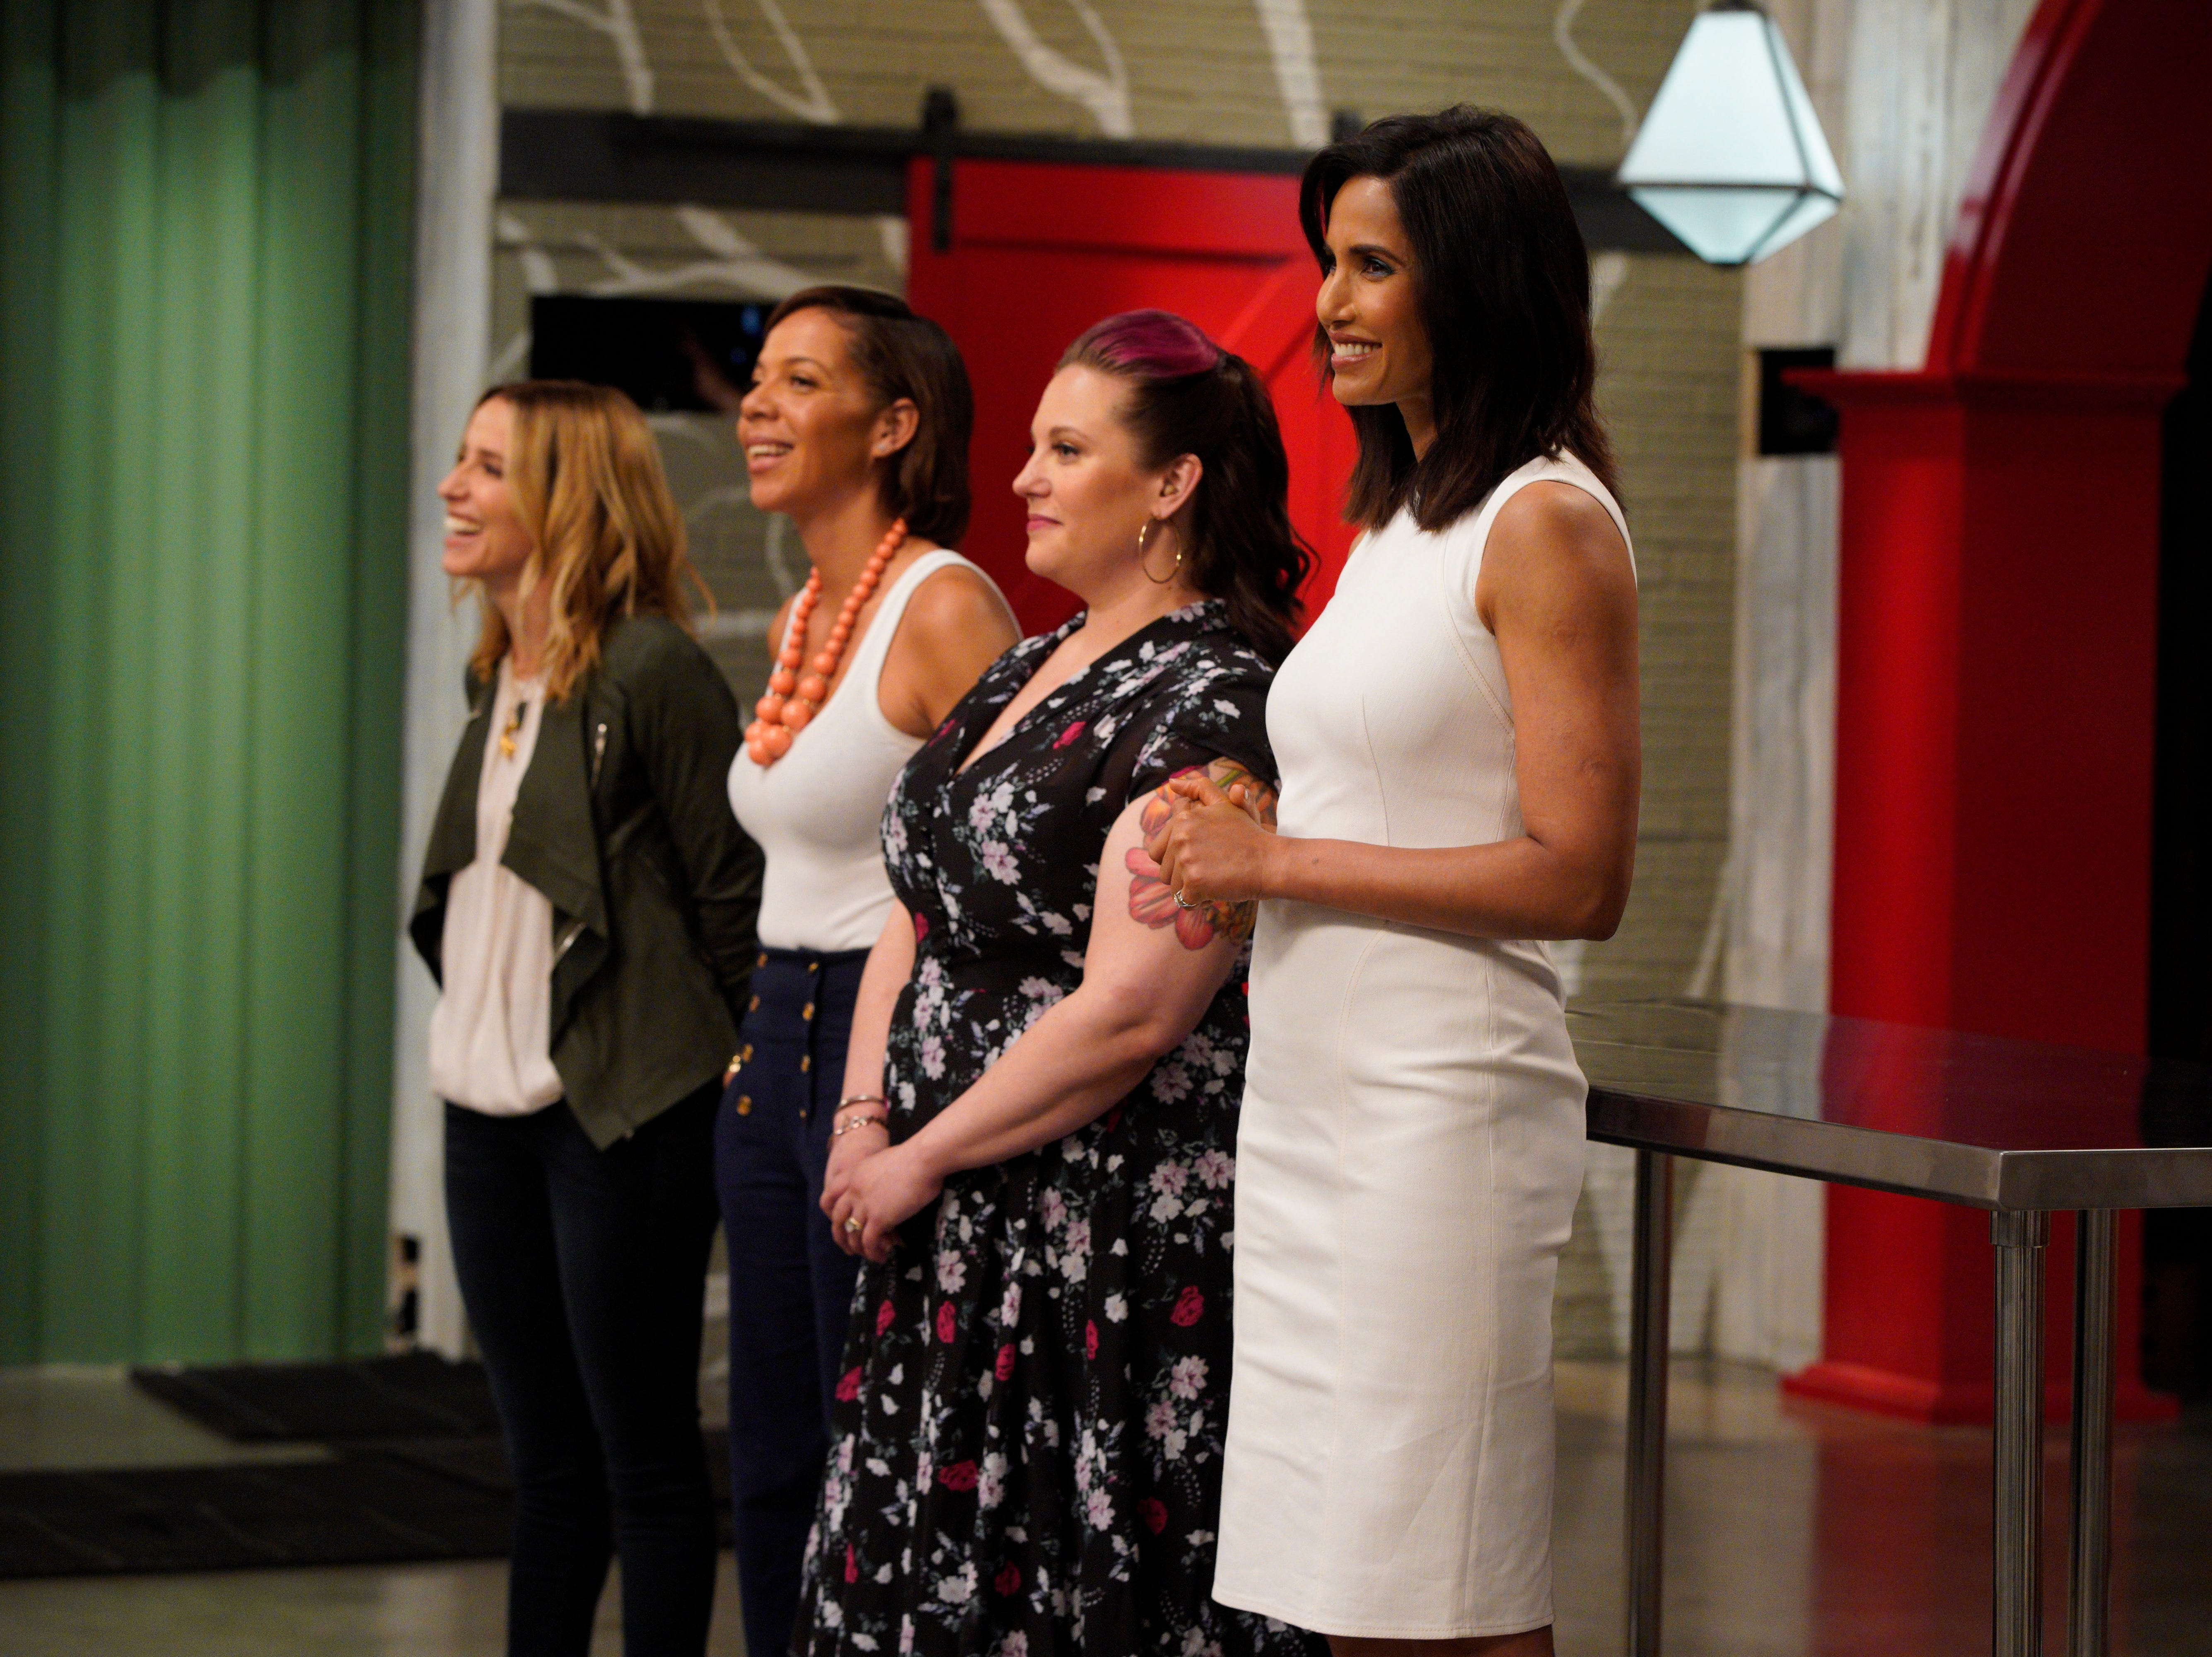 "(From left to right): Restaurateur Caroline Styne, Top Chef alums Nina Compton and Karen Akunowicz and host Padma Lakshmi on episode 4 of Bravo's ""Top Chef"" Kentucky."